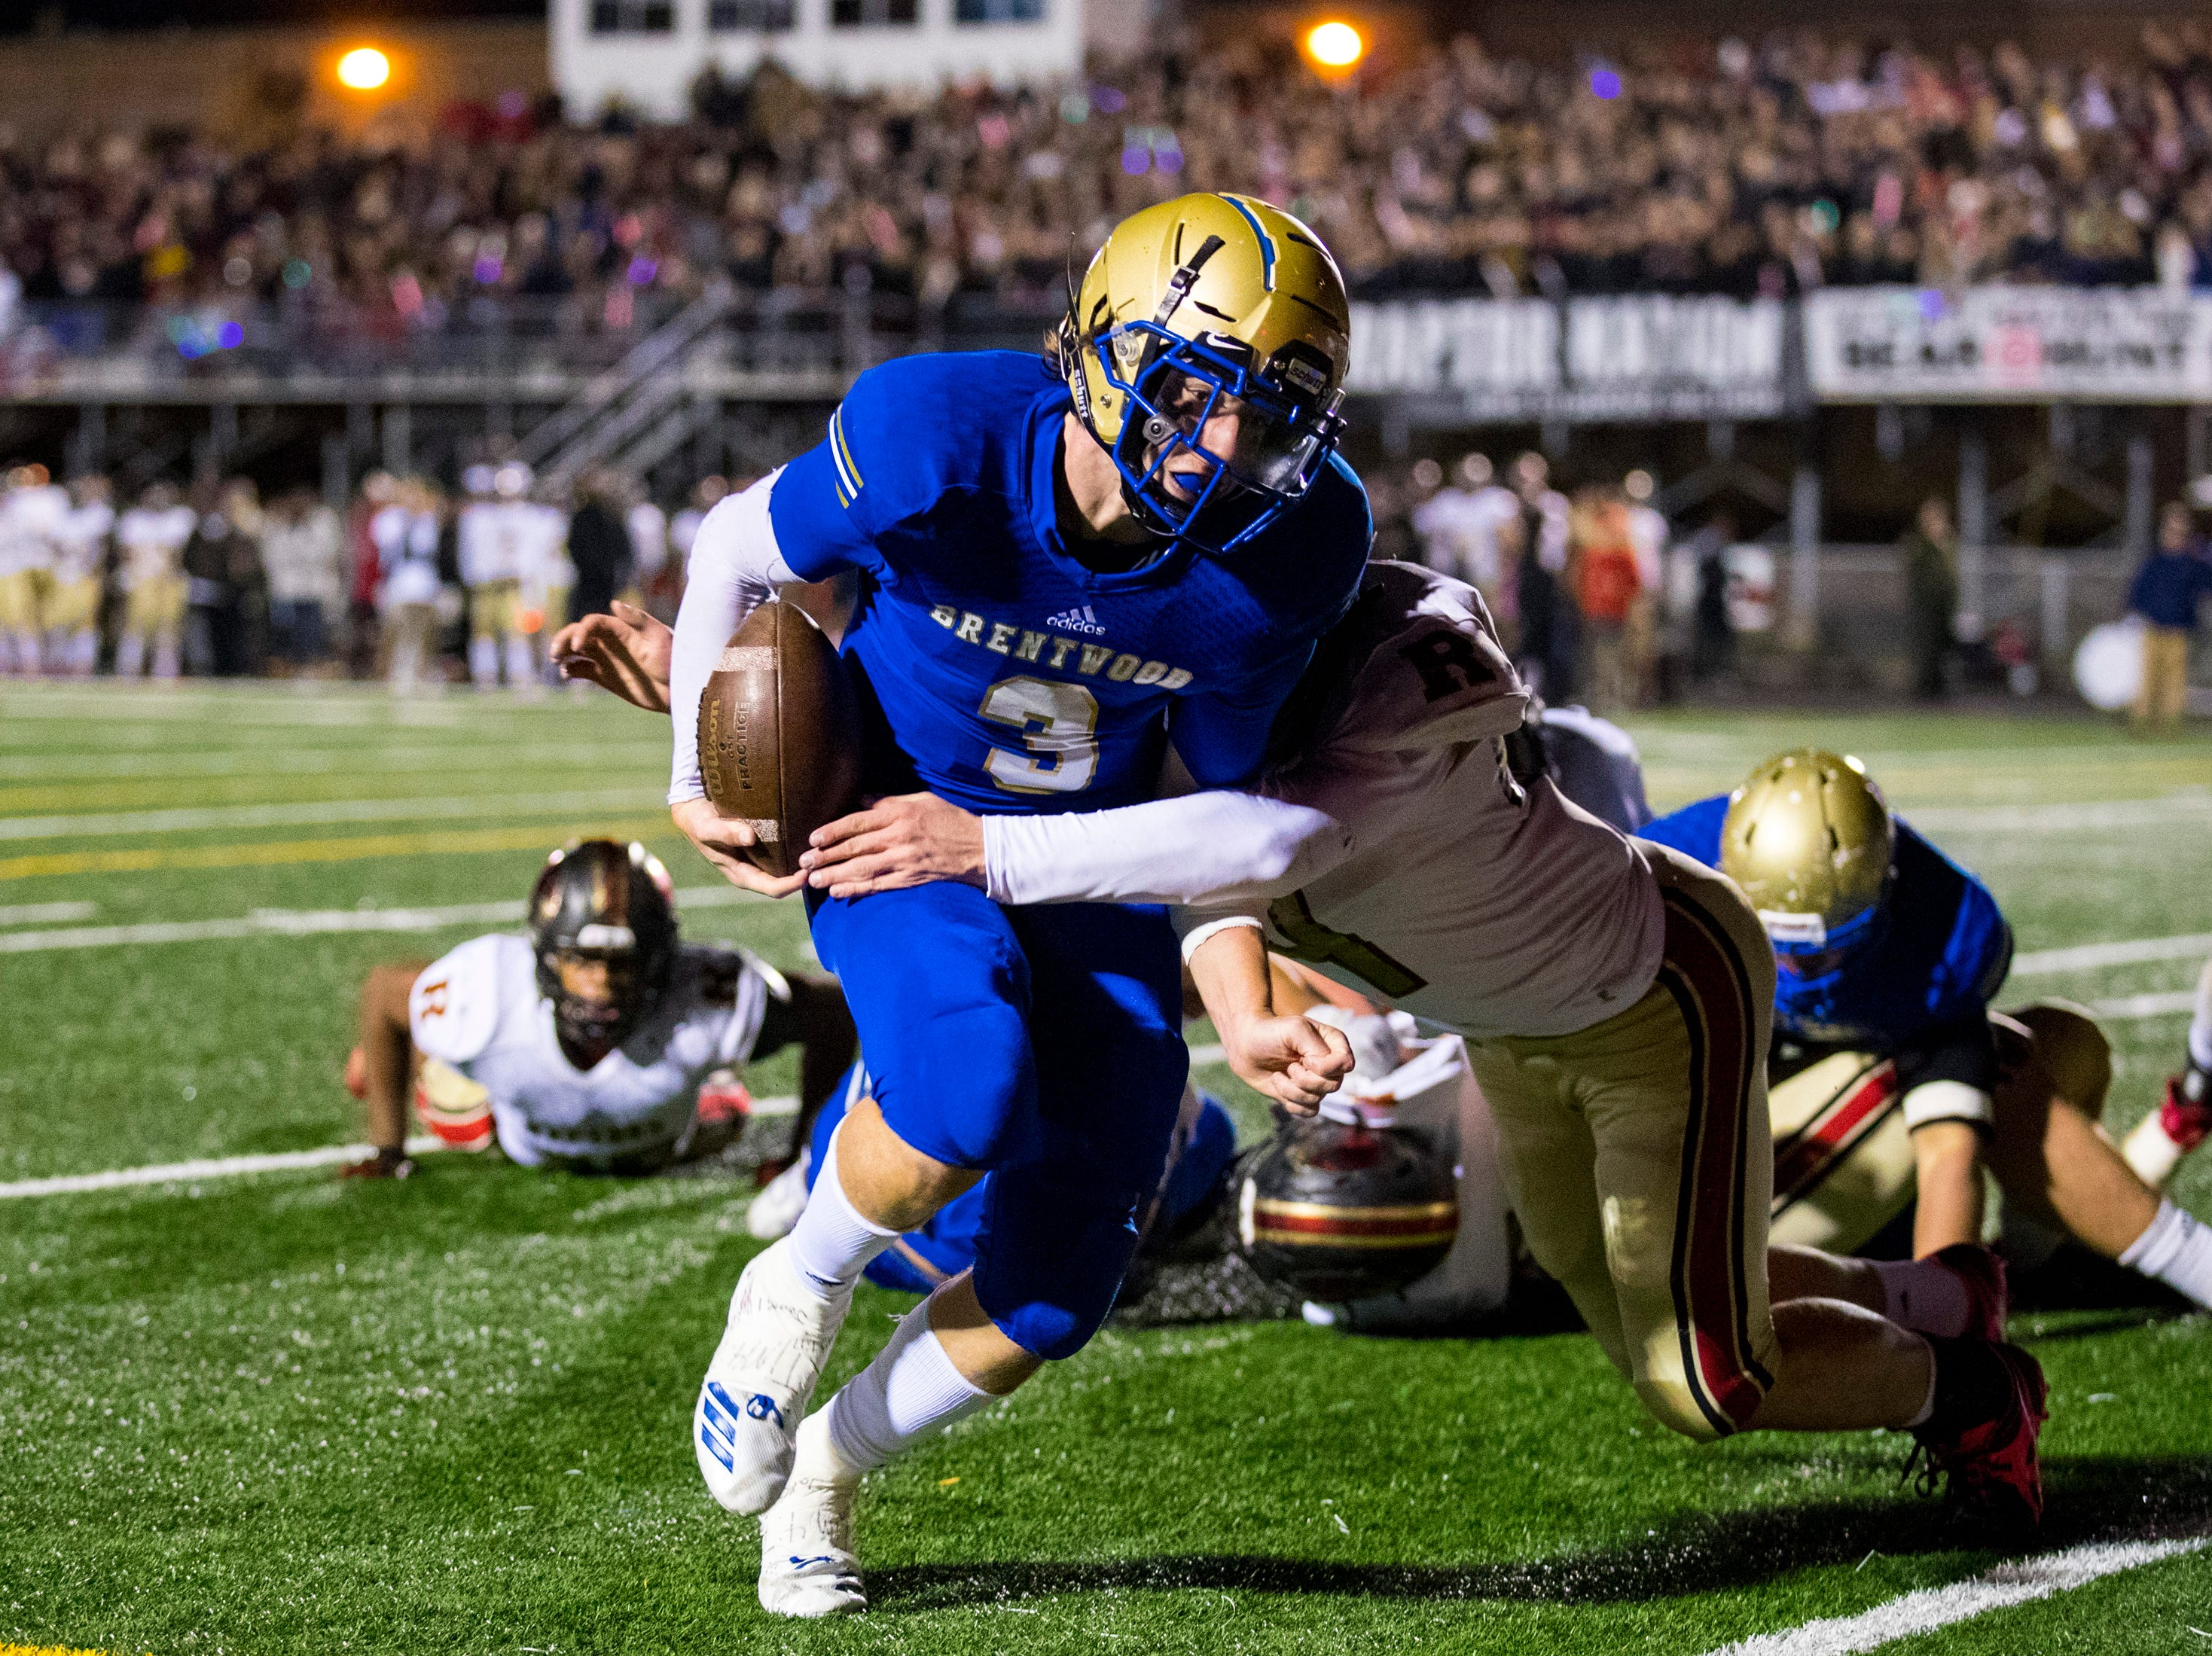 Brentwood's Cade Granzow (3) makes it into the endzone during Brentwood's game against Ravenwood at Brentwood High School in Brentwood on Friday, Nov. 16, 2018.